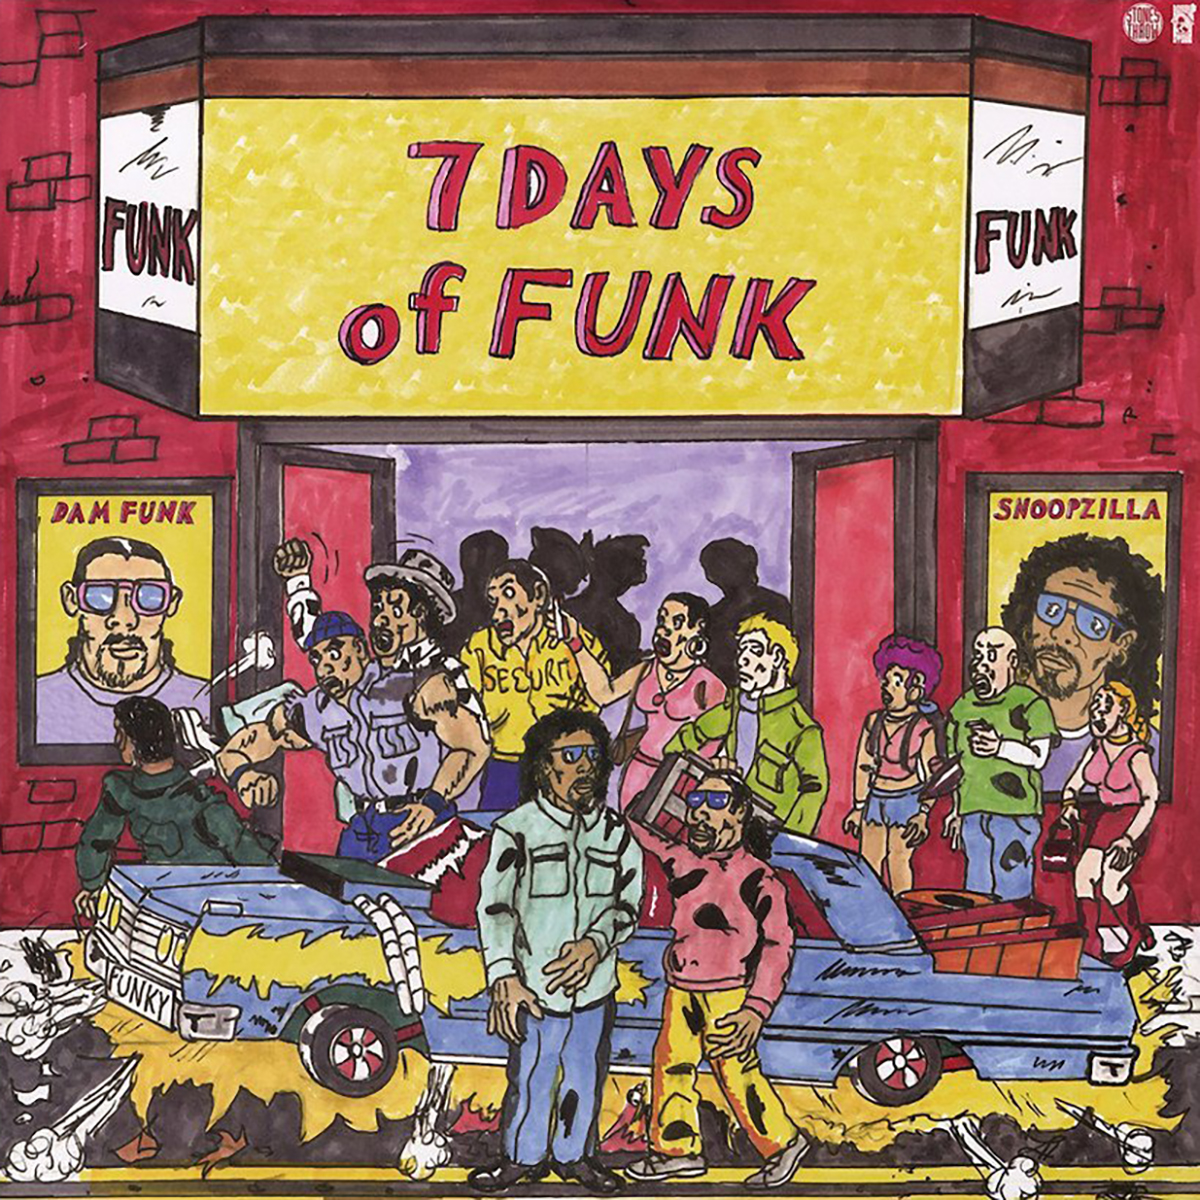 7 Days of Funk, 7 Days of Funk